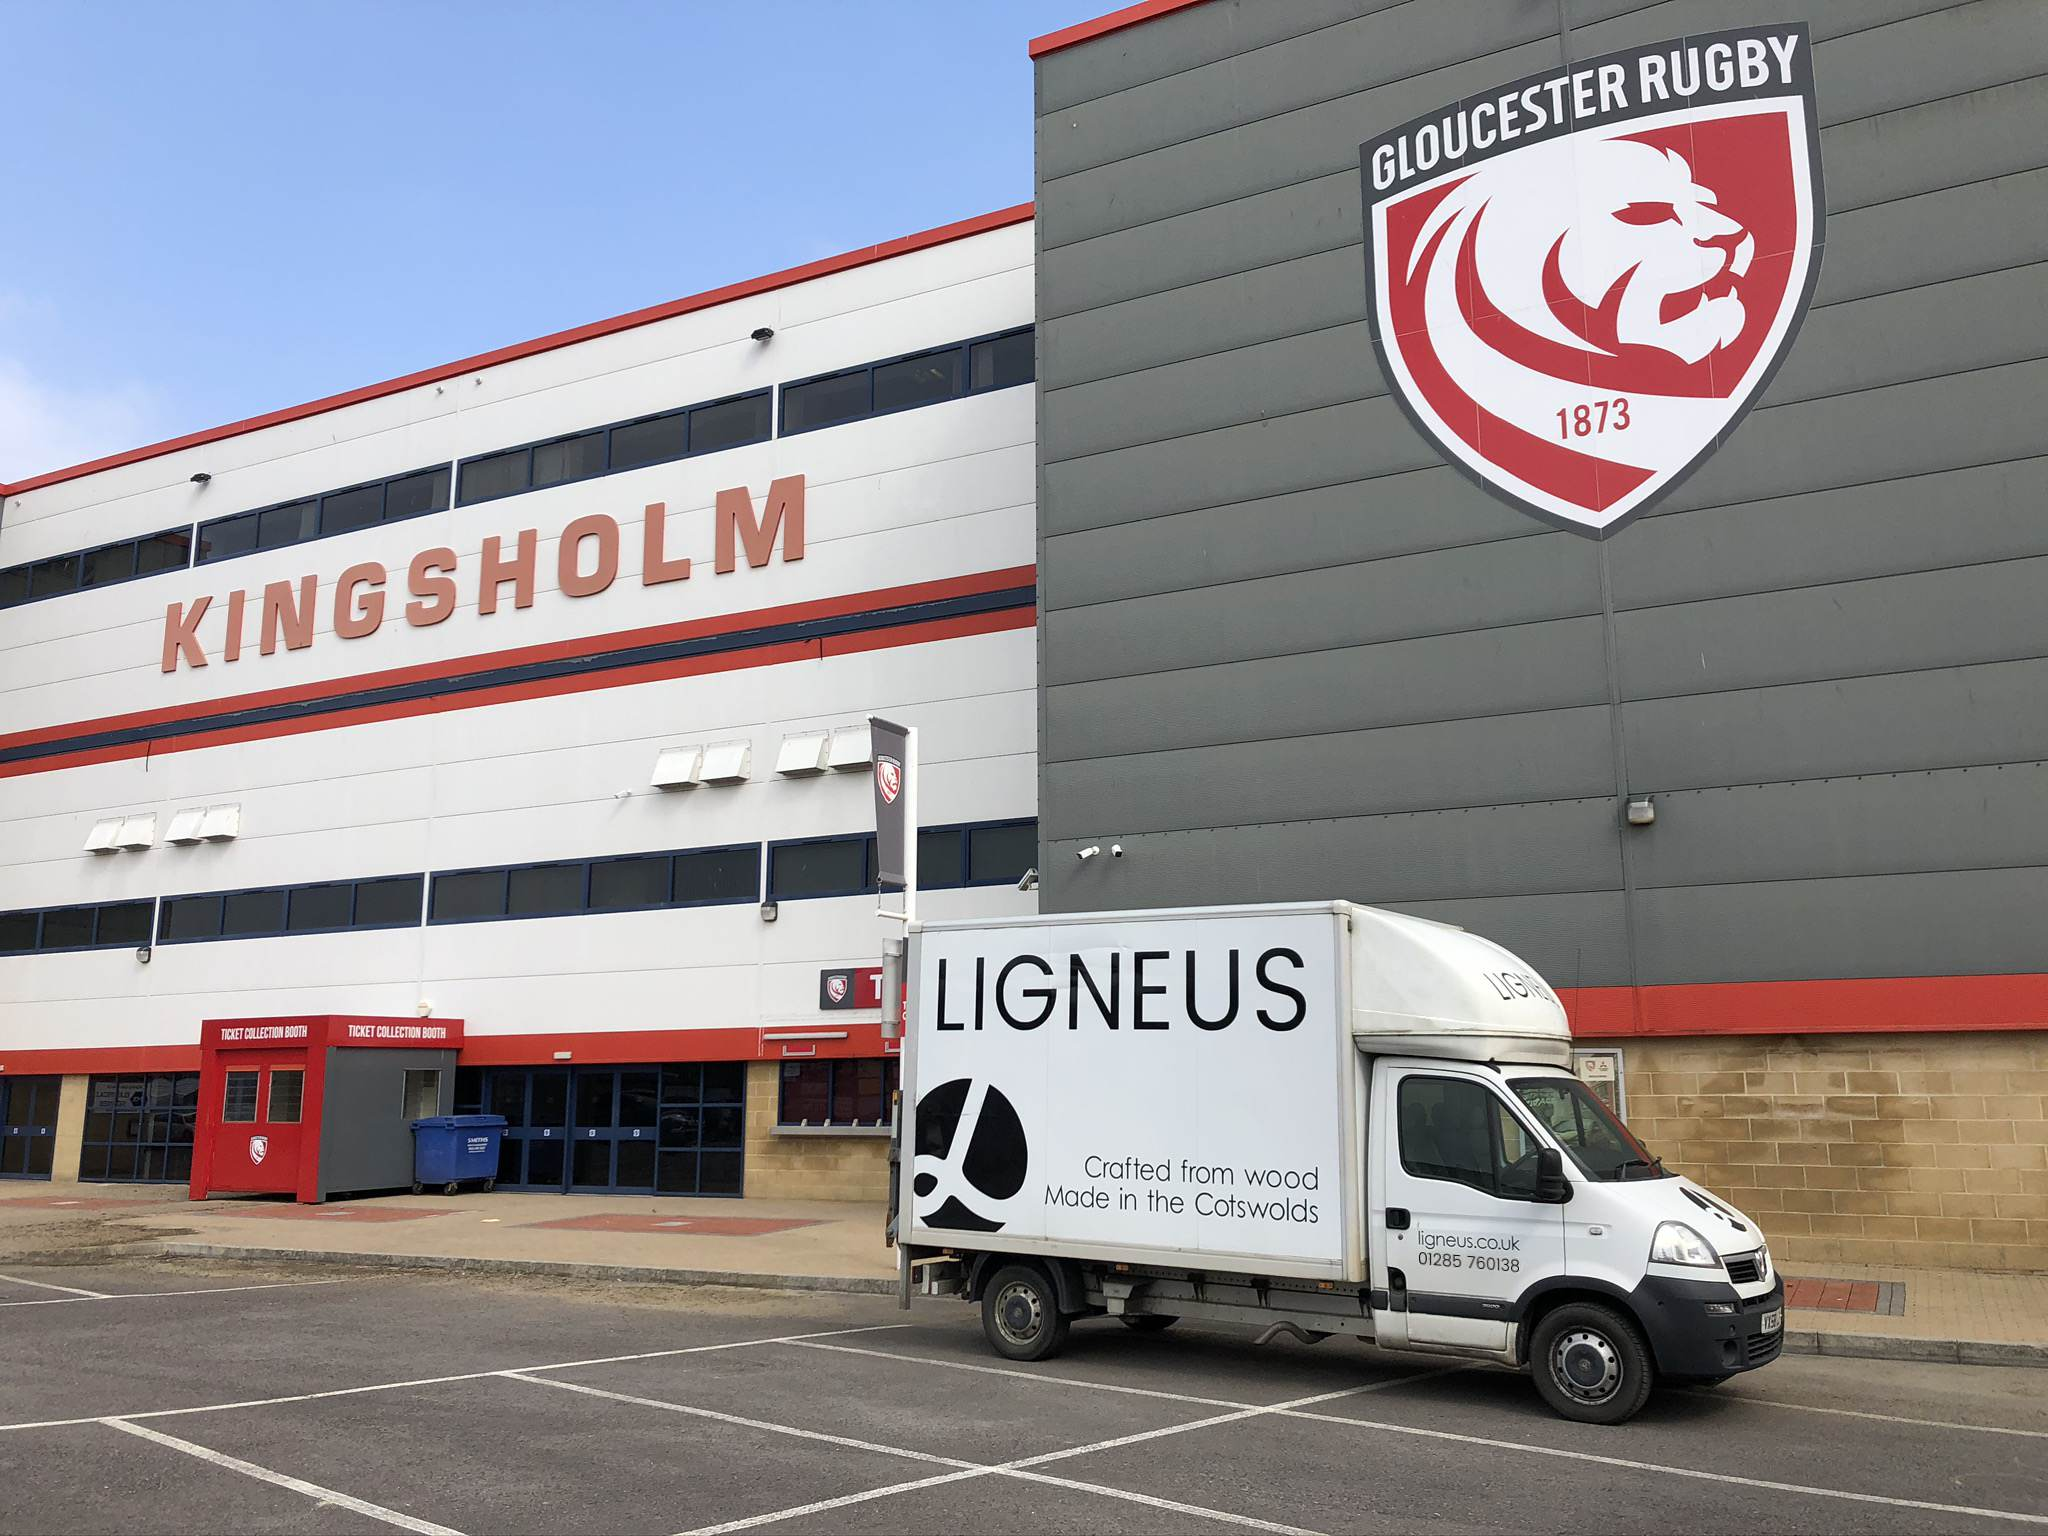 gloucester rugby 03